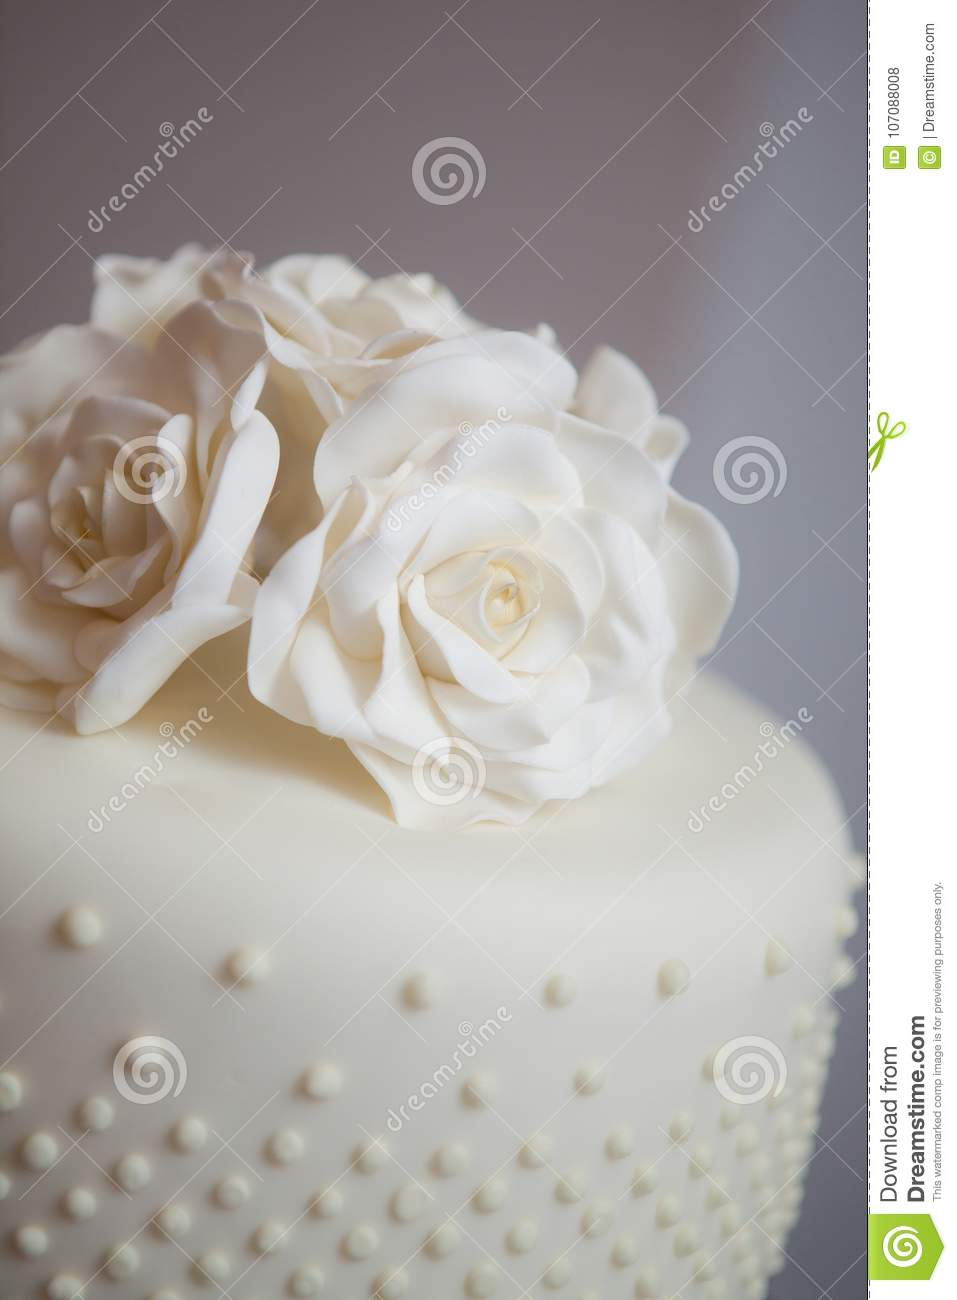 Close Up Of A White Wedding Cake With Flowers Decorating The Top